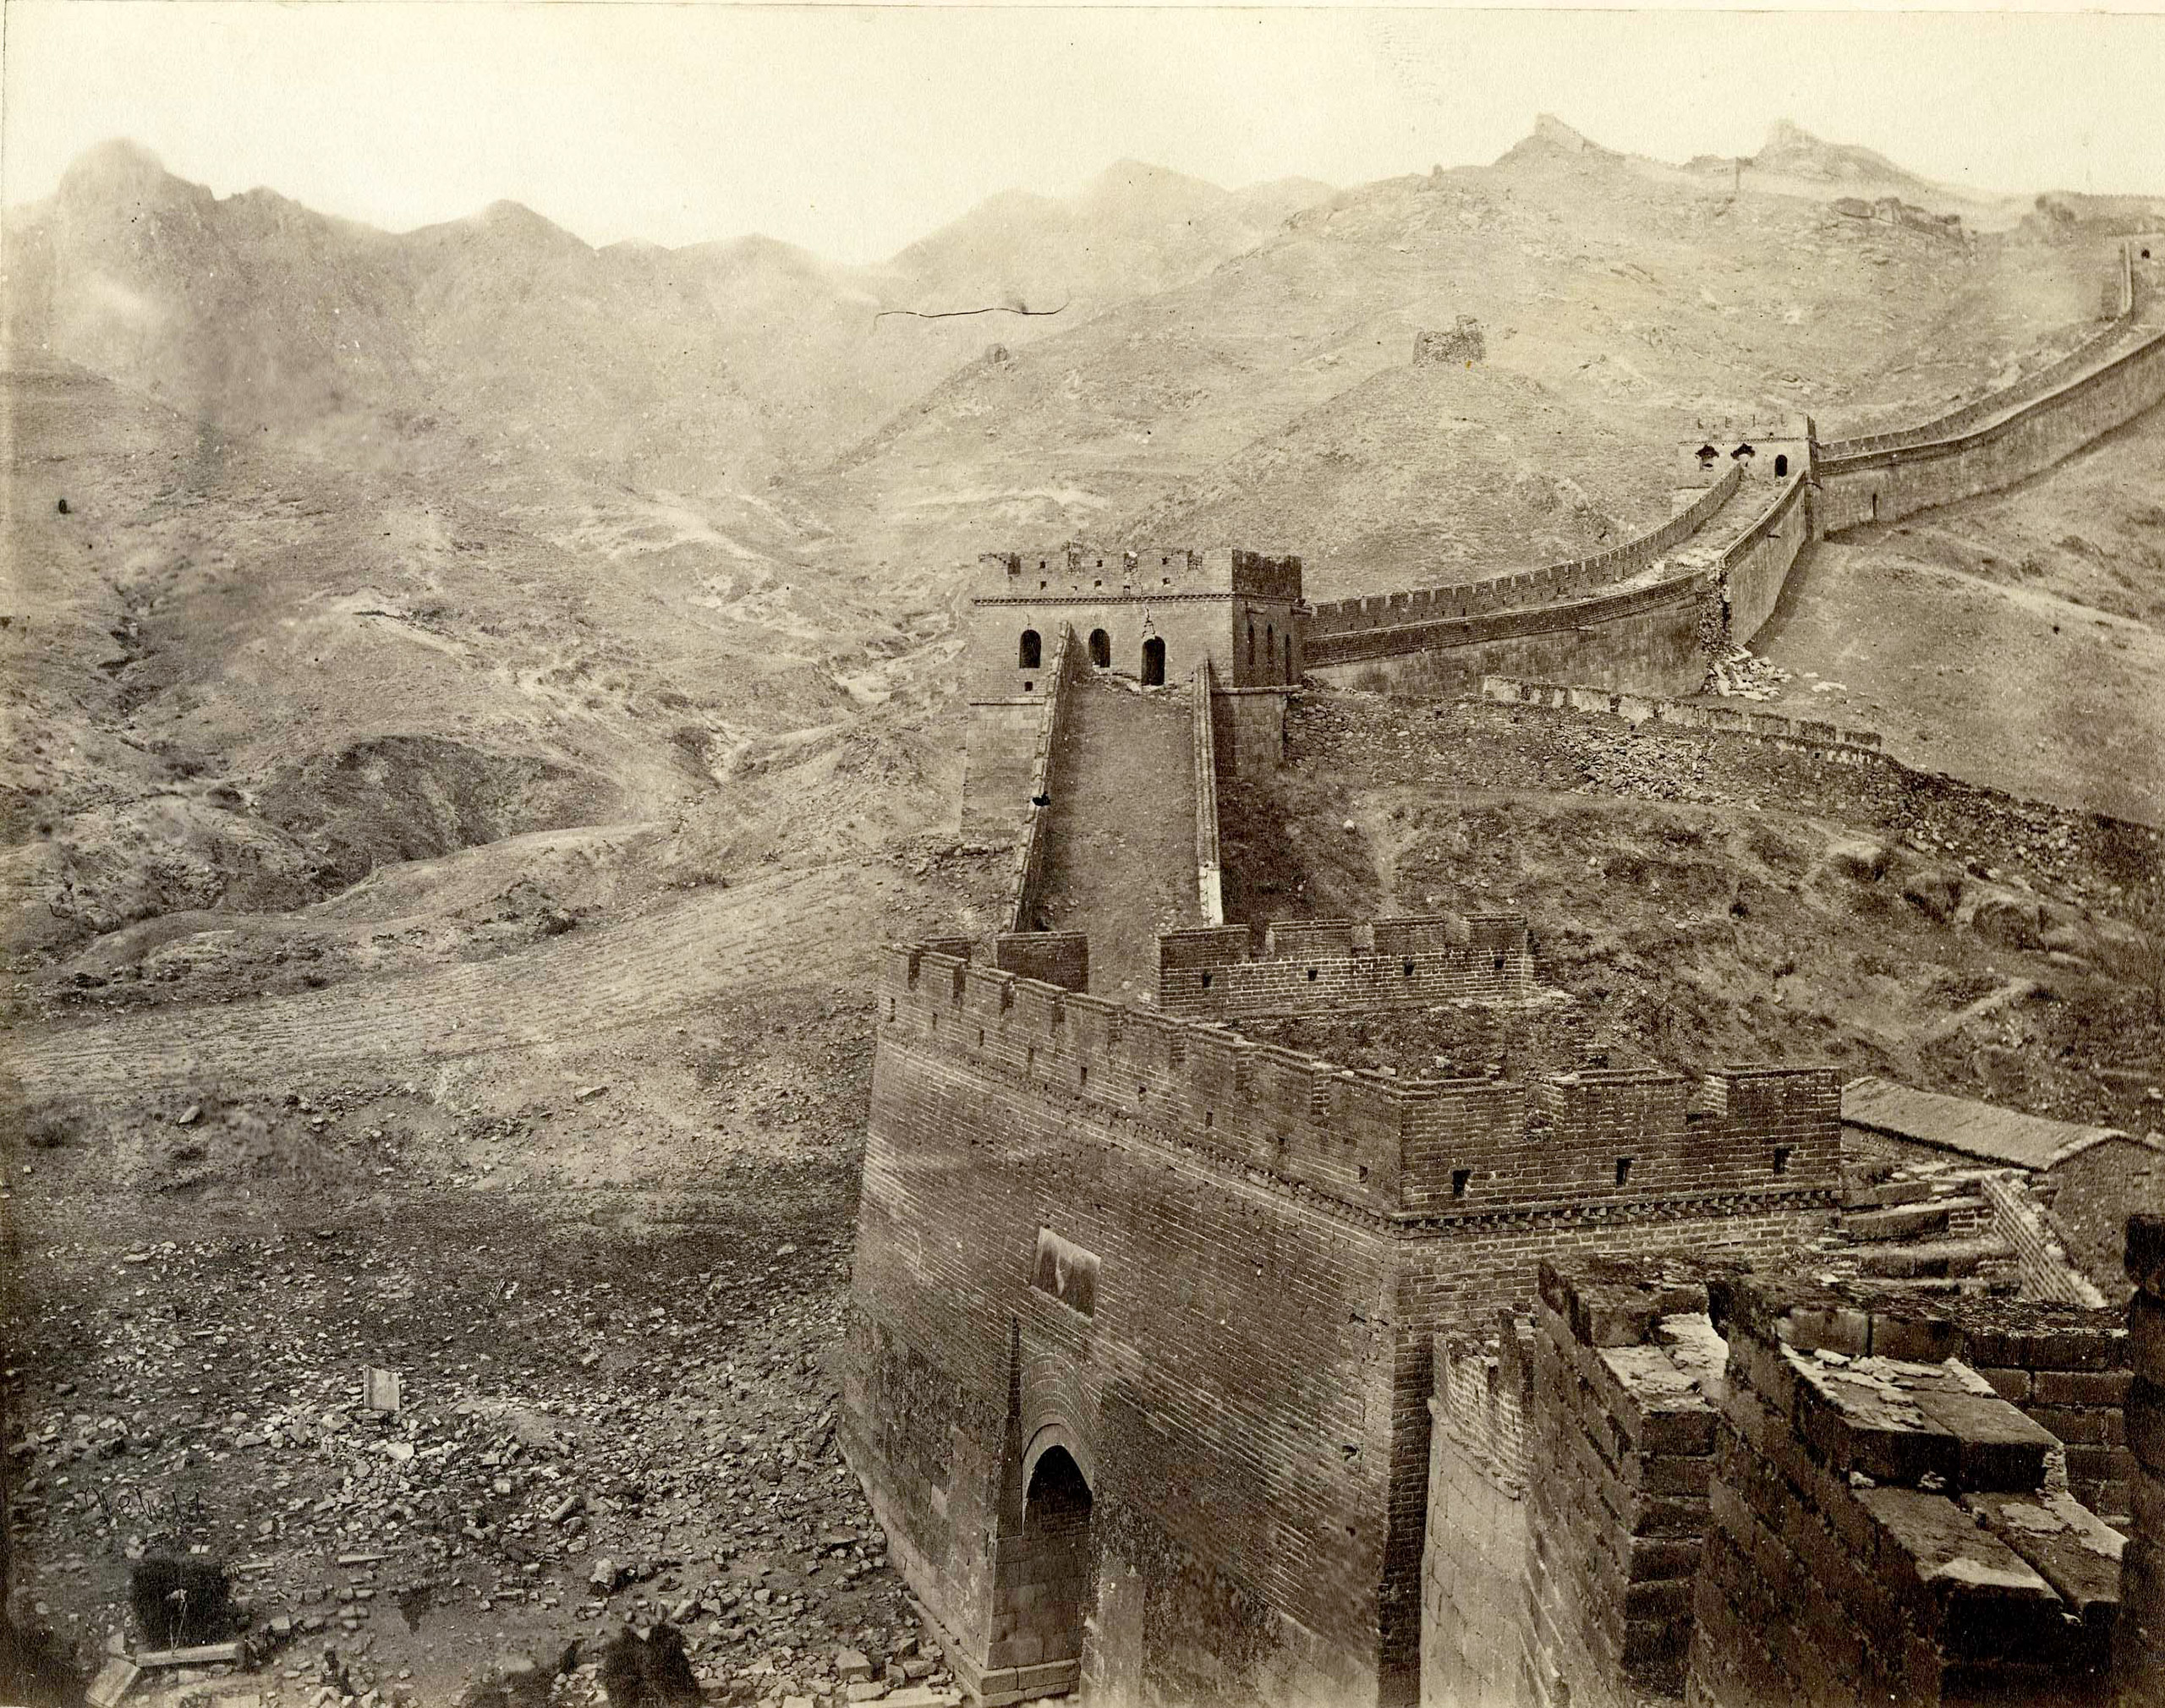 Caption from Stephan Lowentheil Collection. Photograph shows the section of the Great Wall that includes the Nan-K'ou pass leading to Mongolia. The pass was one of the main arteries through which trade flowed between China and Mongolia. The photograph provides evidence of the Qing practice of forest removal for security as well as building materials. The Chinese government reversed that policy in modern times, and trees now surround this portion of the wall.